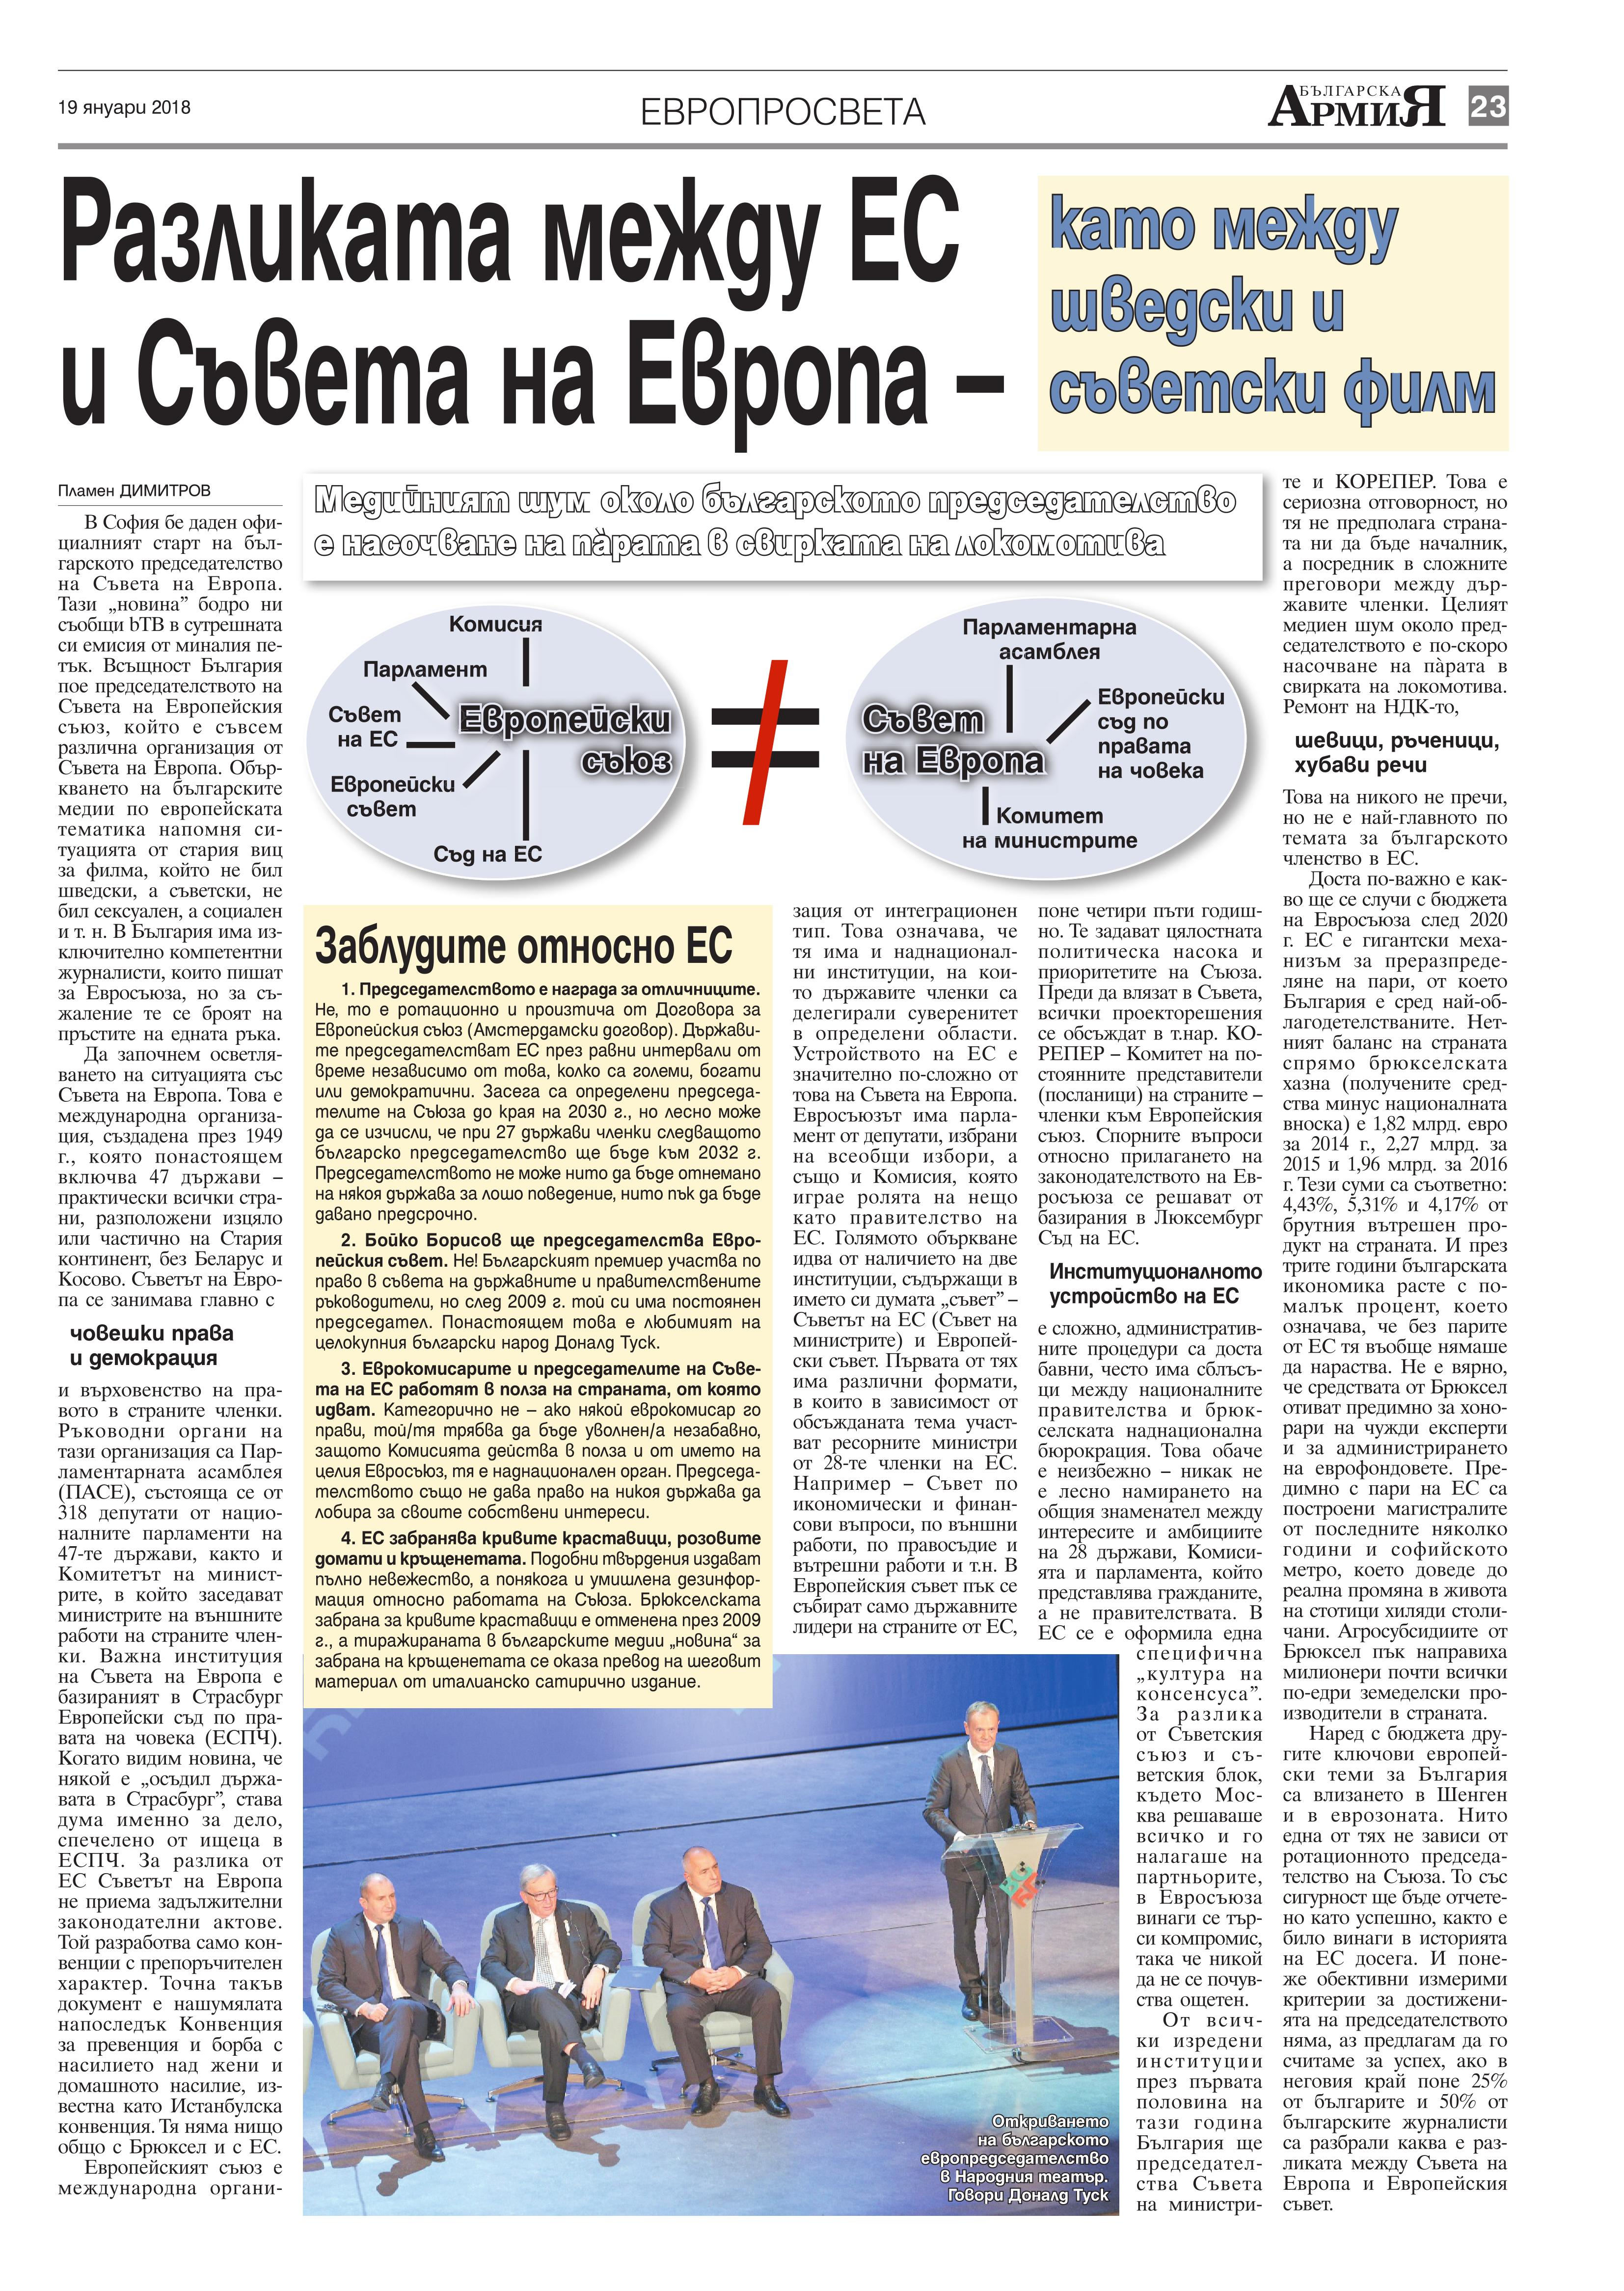 http://armymedia.bg/wp-content/uploads/2015/06/23.page1_-37.jpg